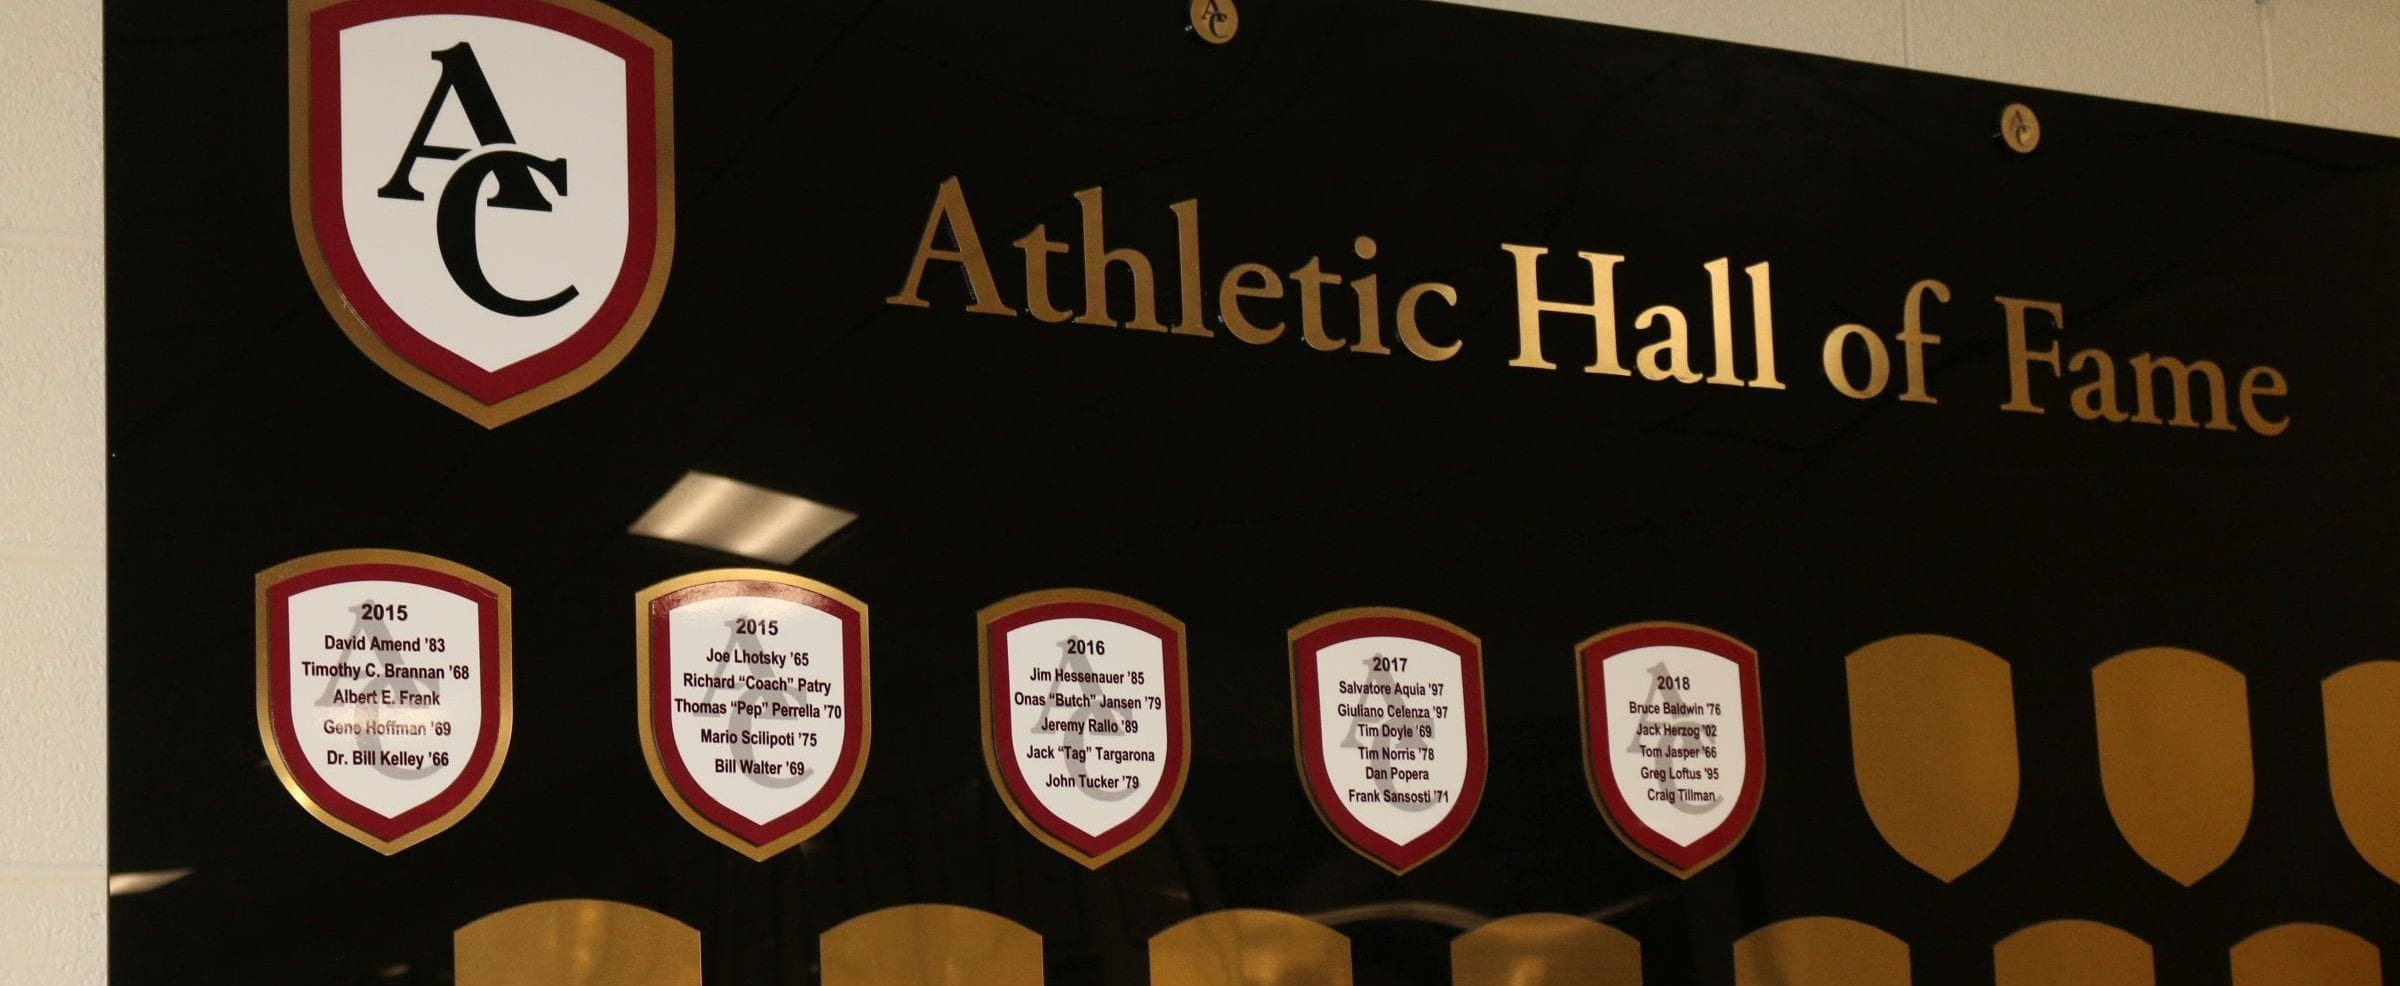 Athletic Hall of Fame